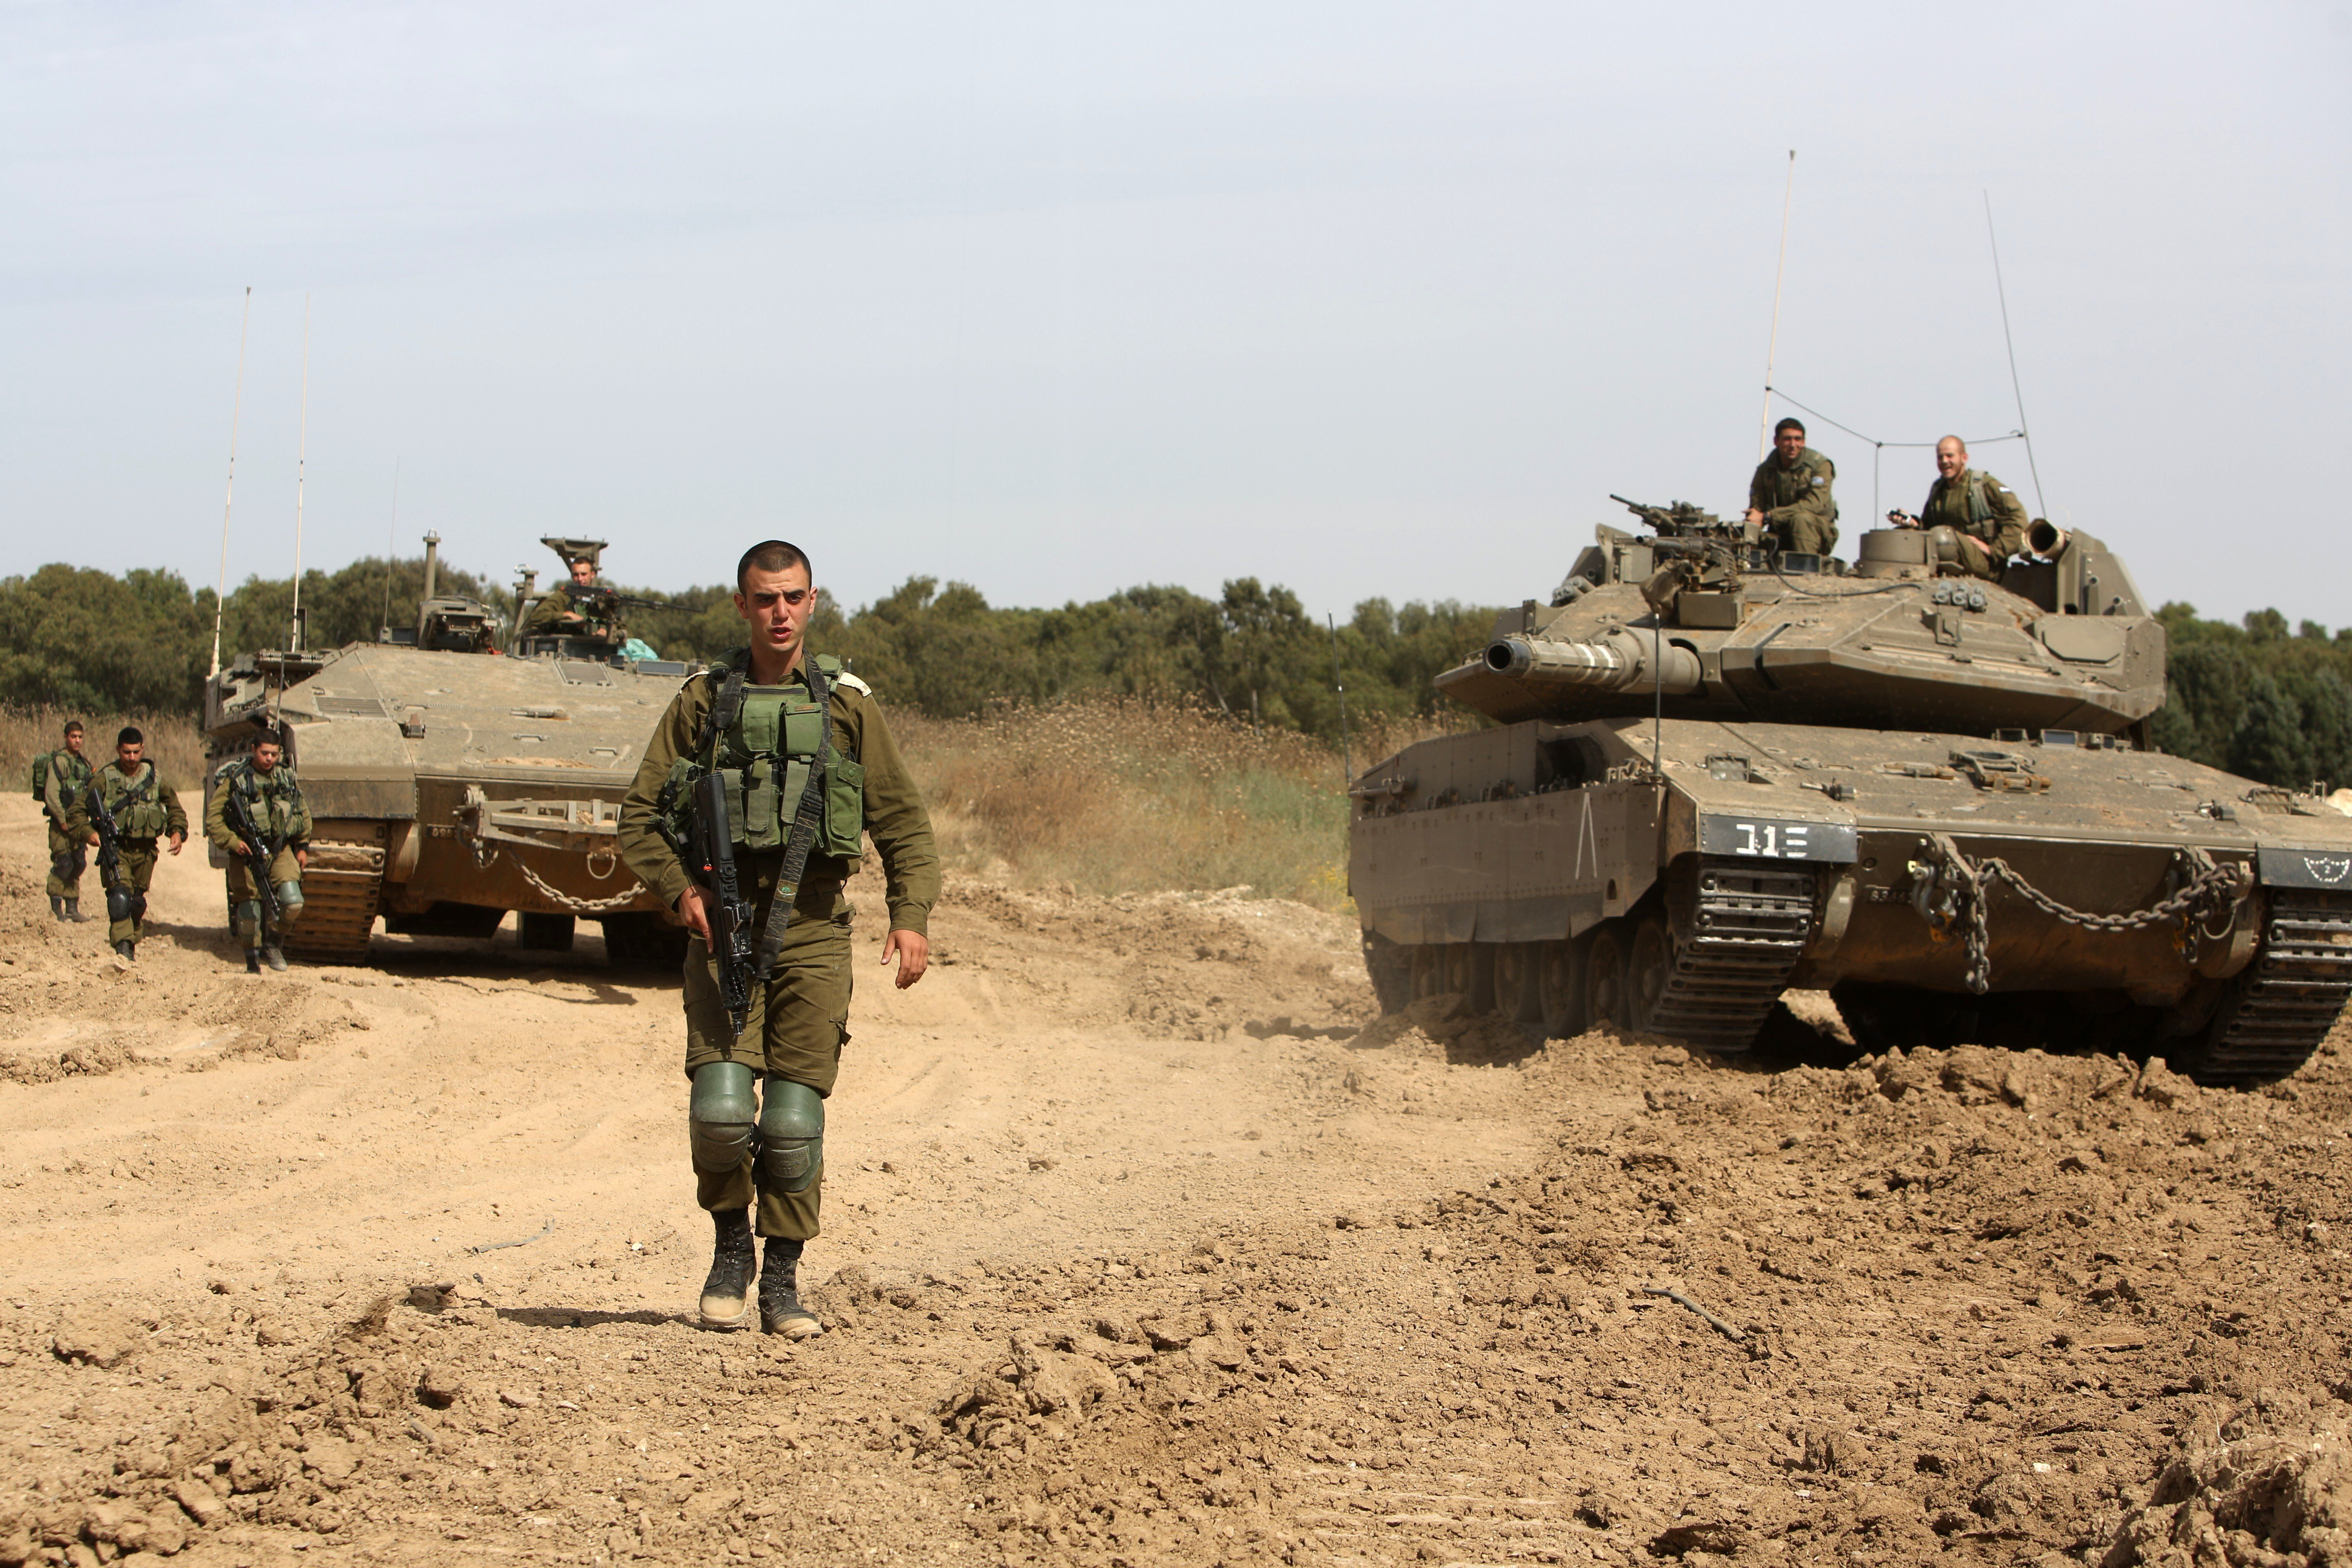 Israeli soldiers stand guard next to a tank and an APC (armoured personal carrier) along the border between Israel and the Gaza Strip near the southern Israeli Kibbutz of Nahal Oz on May 4, 2016. The border between Israel and the Gaza Strip saw a bout of violence, with exchanges of fire that put a 2014 ceasefire agreement to the test. Israeli tanks fired into the Hamas-run Palestinian enclave at least twice, saying it was in response to mortar fire across the border, while the army designated an Israeli border town a closed military zone.   / AFP PHOTO / MENAHEM KAHANA        (Photo credit should read MENAHEM KAHANA/AFP/Getty Images)